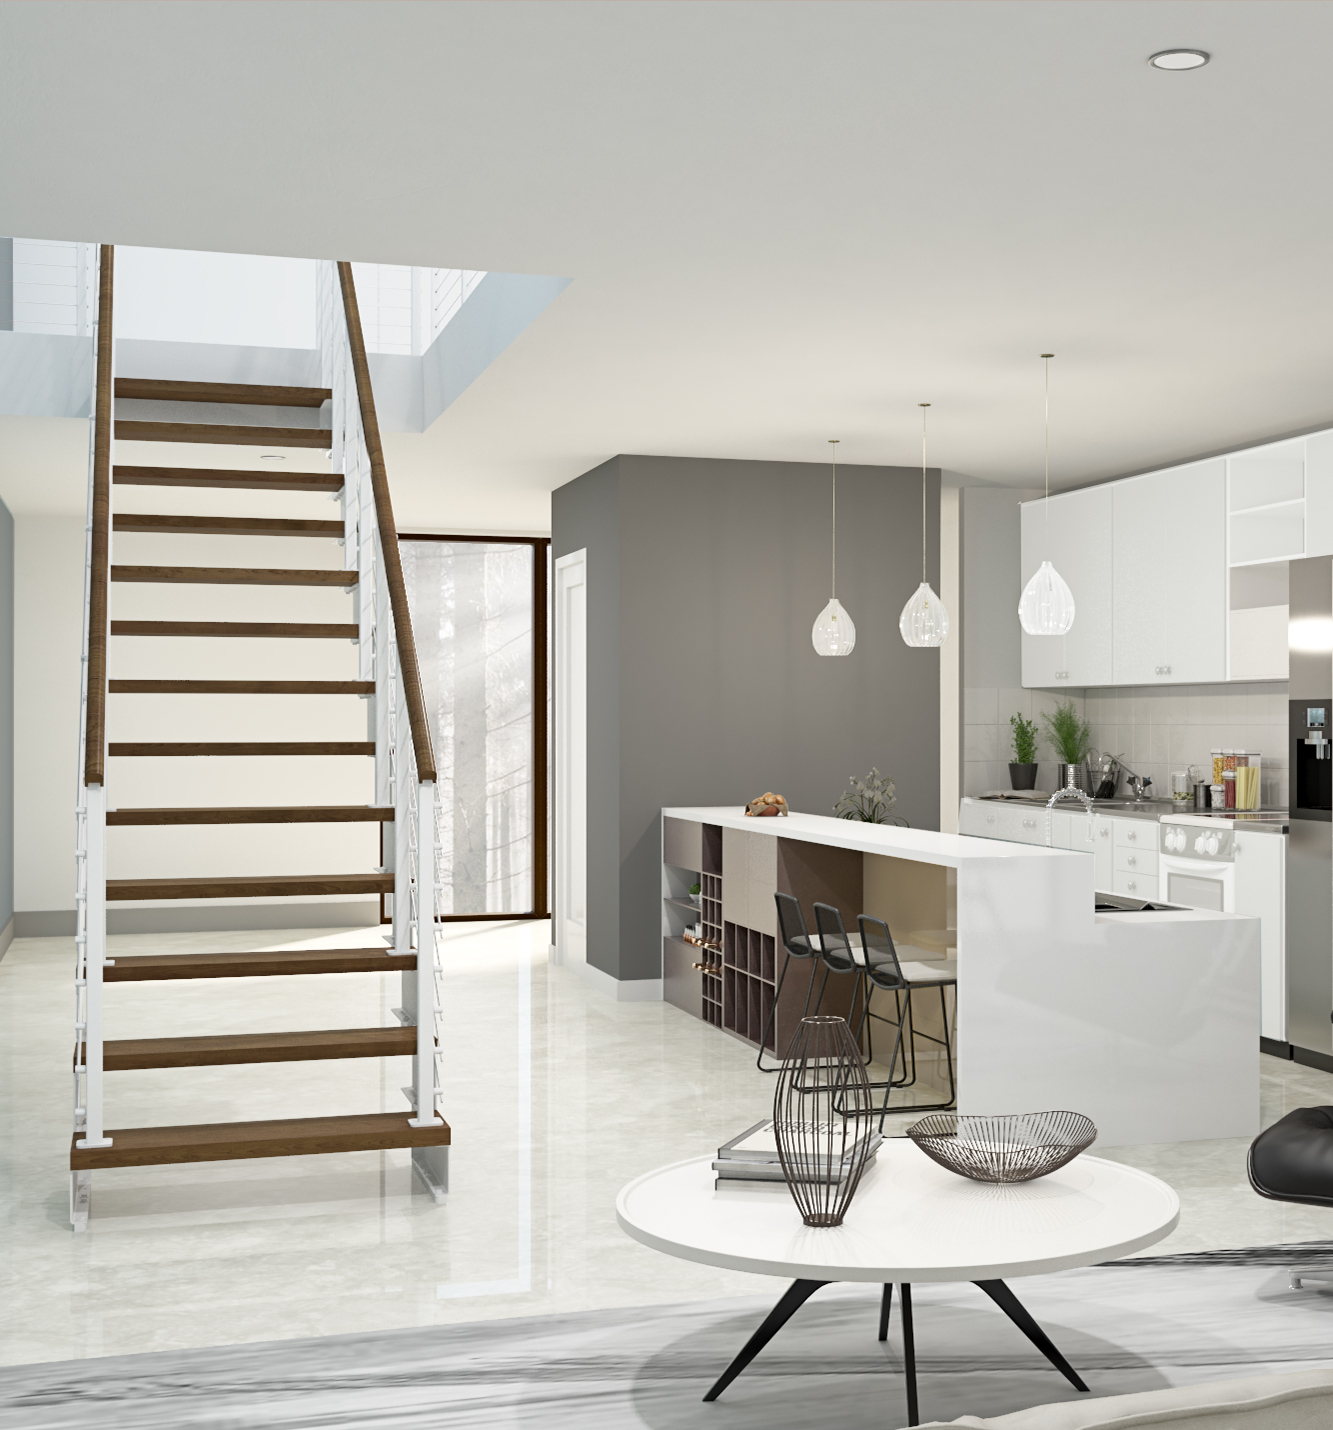 Stair Design Budget And Important Things To Consider: Modular Straight Staircase Kits